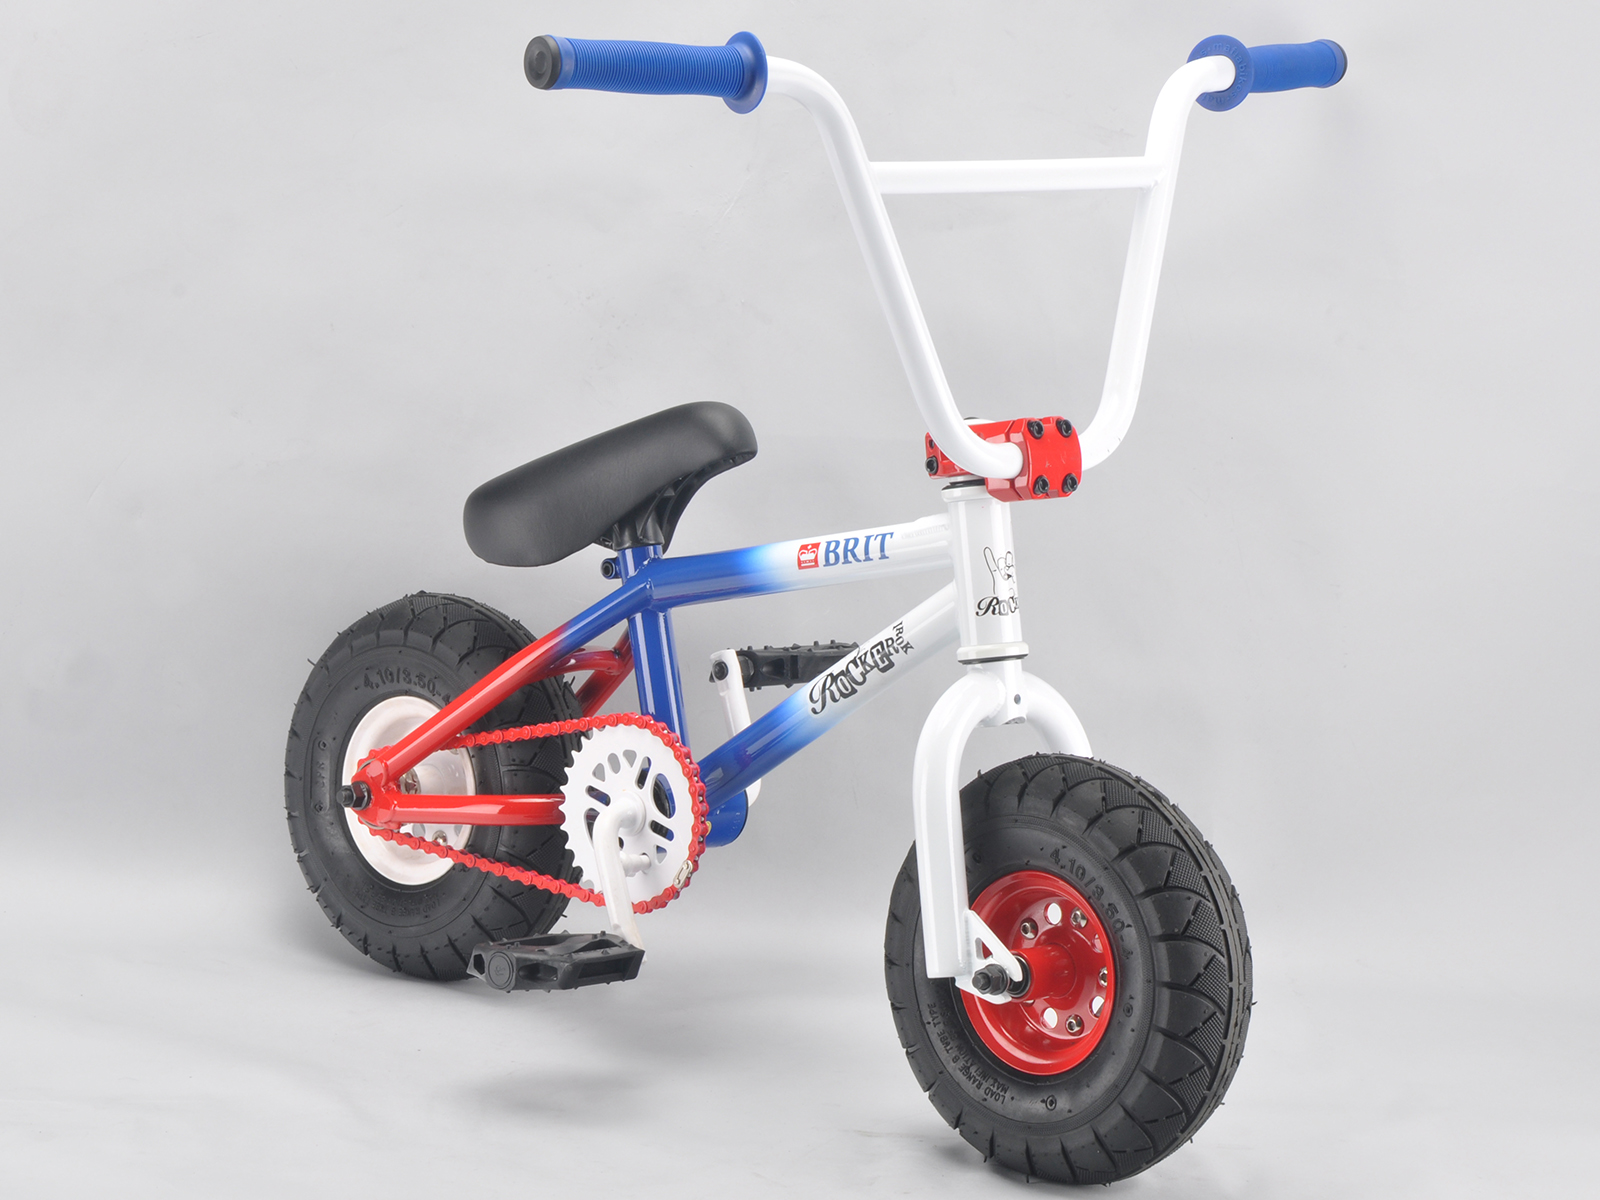 http://rockerbmx.com/images/stories/virtuemart/product/BRITIROK0145%203.jpg